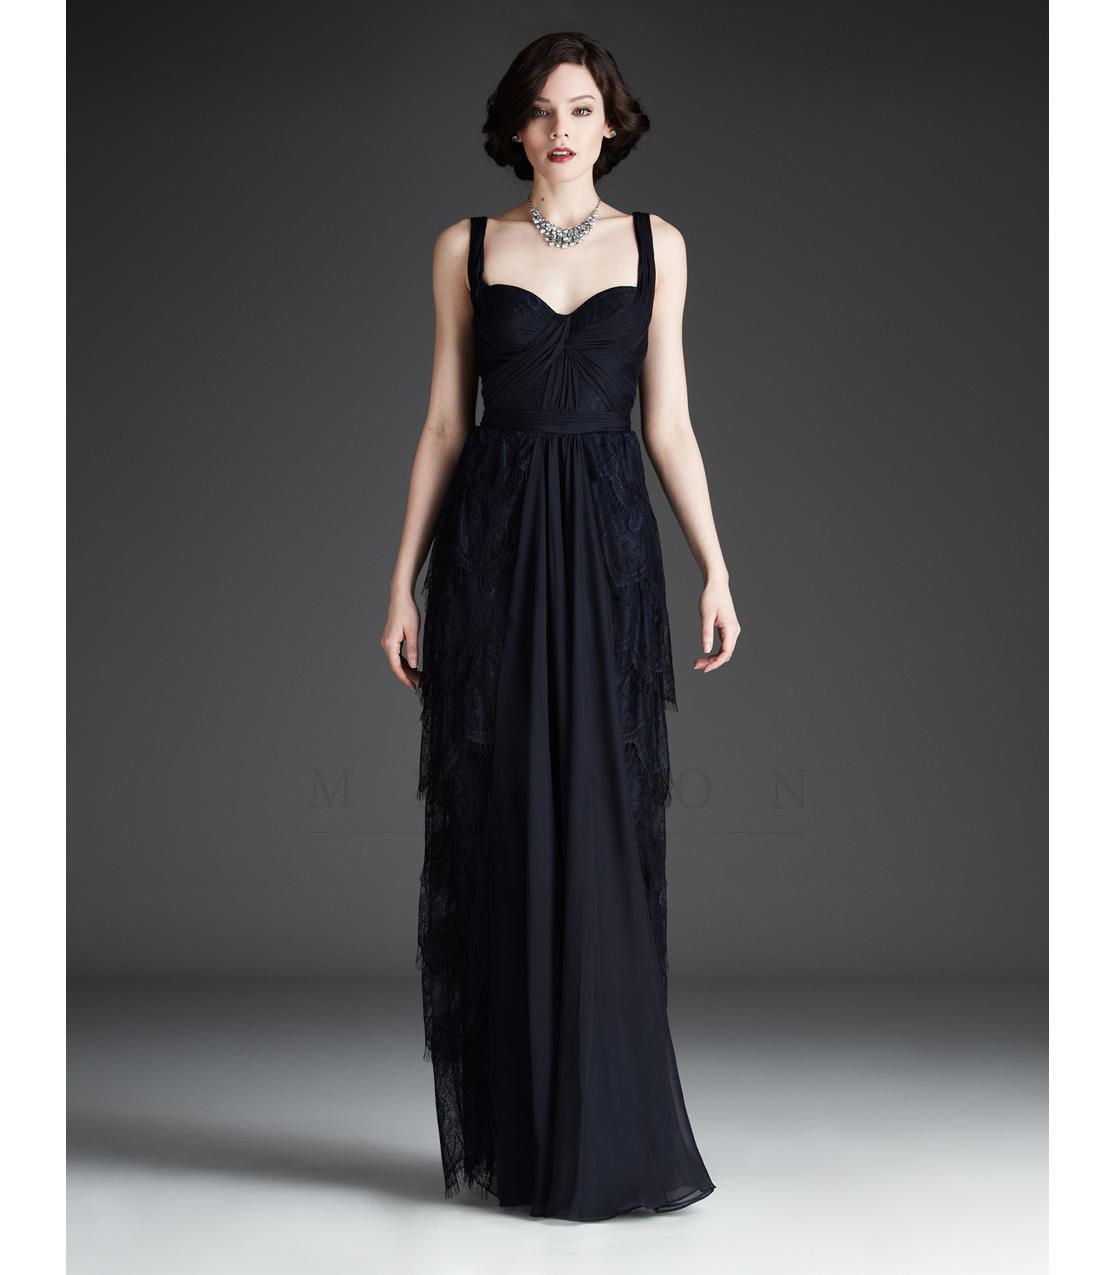 VM889 Mignon 2013 Fall Dresses - Midnight Lace Gown from Unique Vintage. Saved to different.